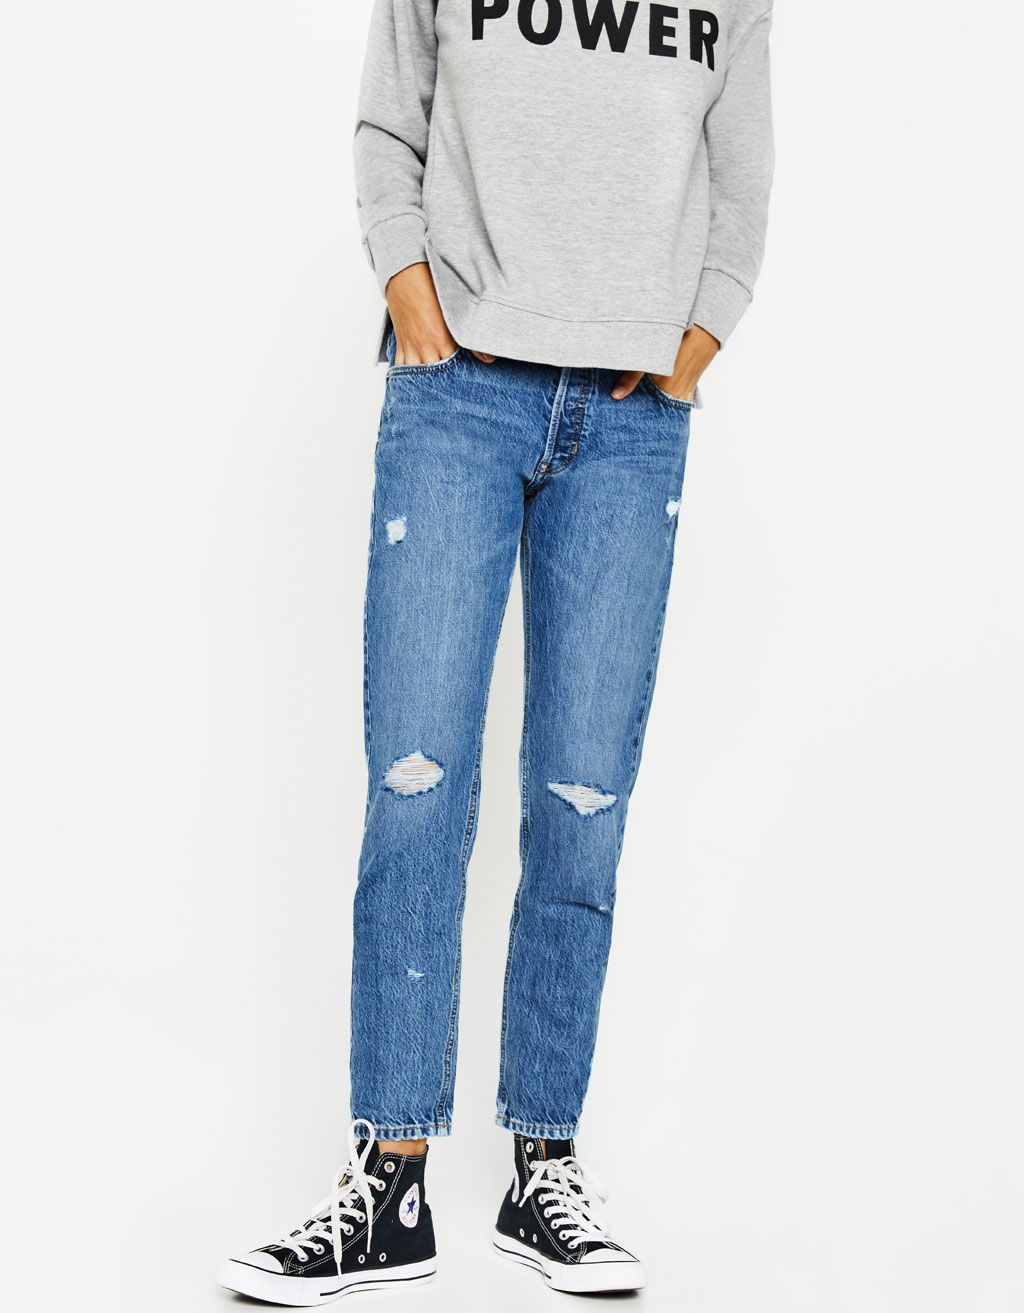 c233b5d573 Ripped slim fit boyfriend jeans. Discover this and many more items in  Bershka with new products every week